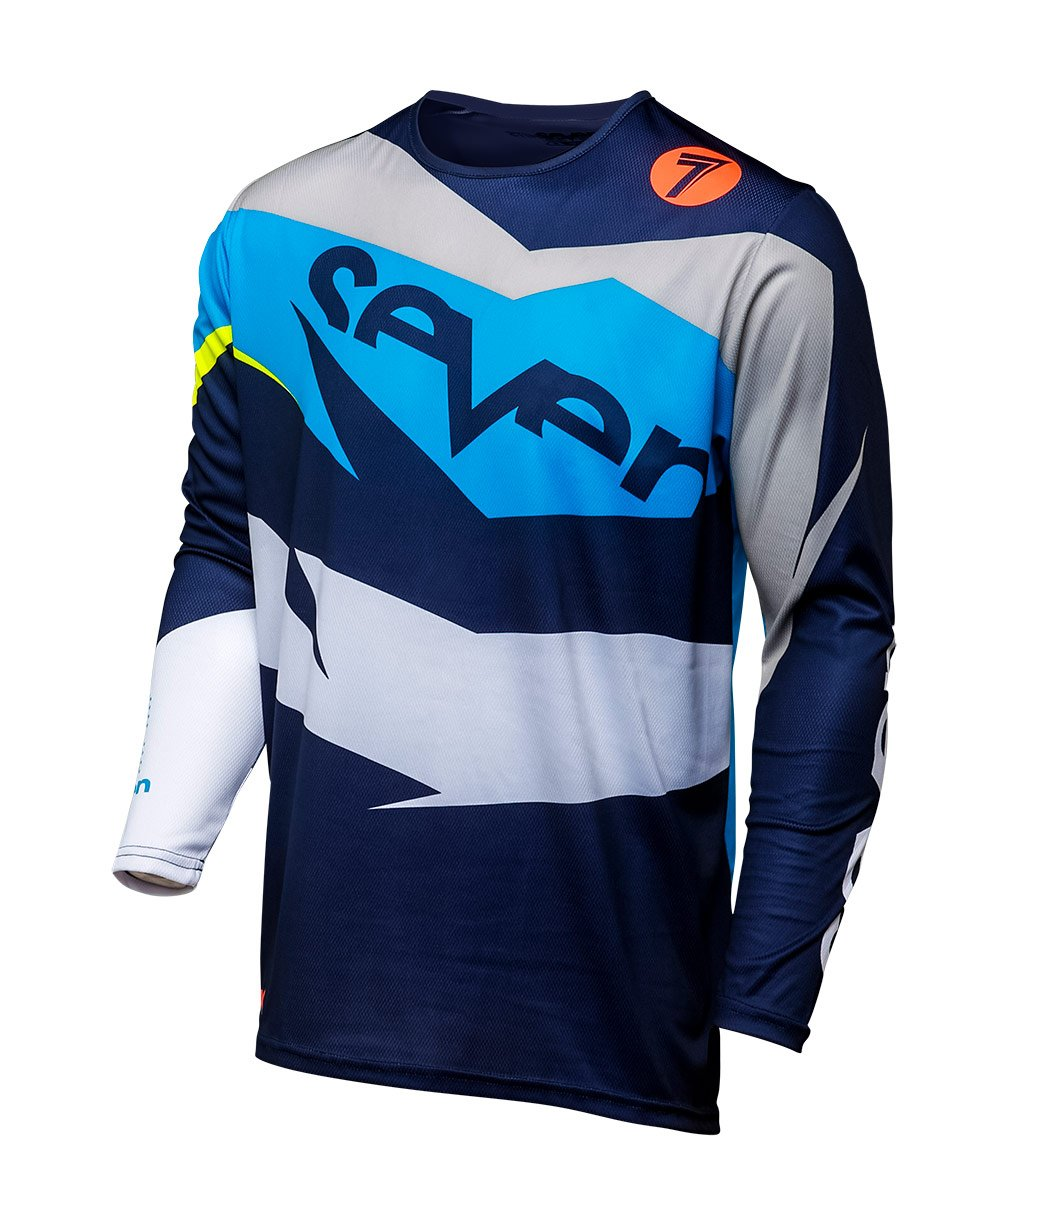 Youth Annex Ignite Jersey - Coral/Navy